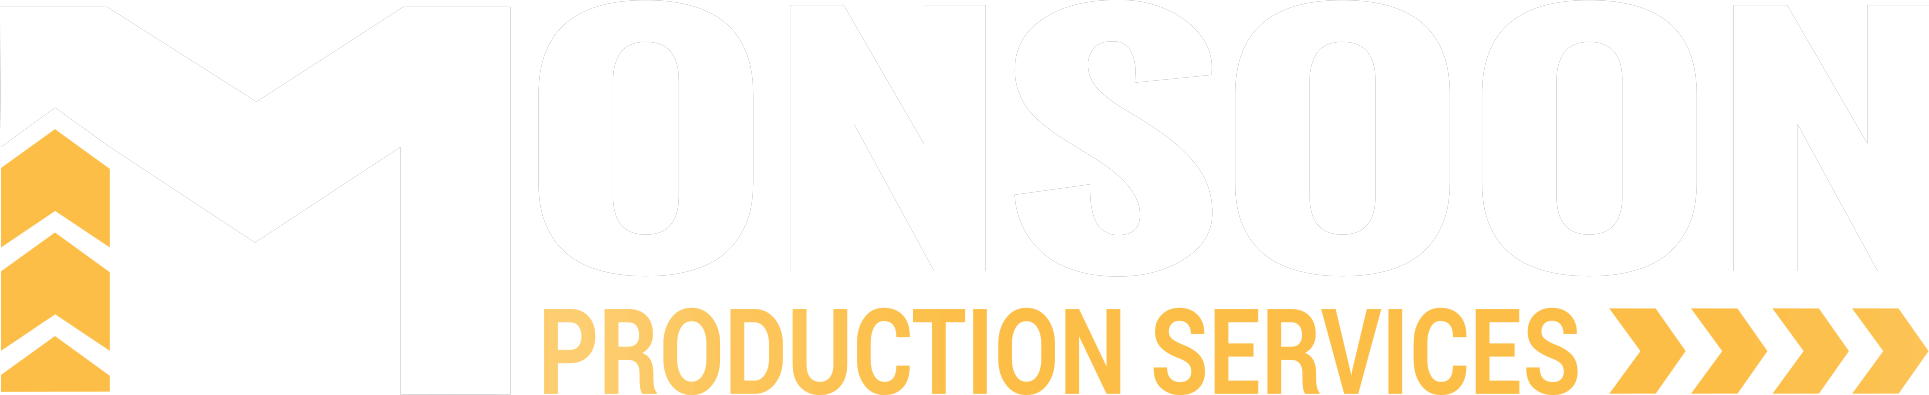 Monsoon Production Services Logo White with Gold